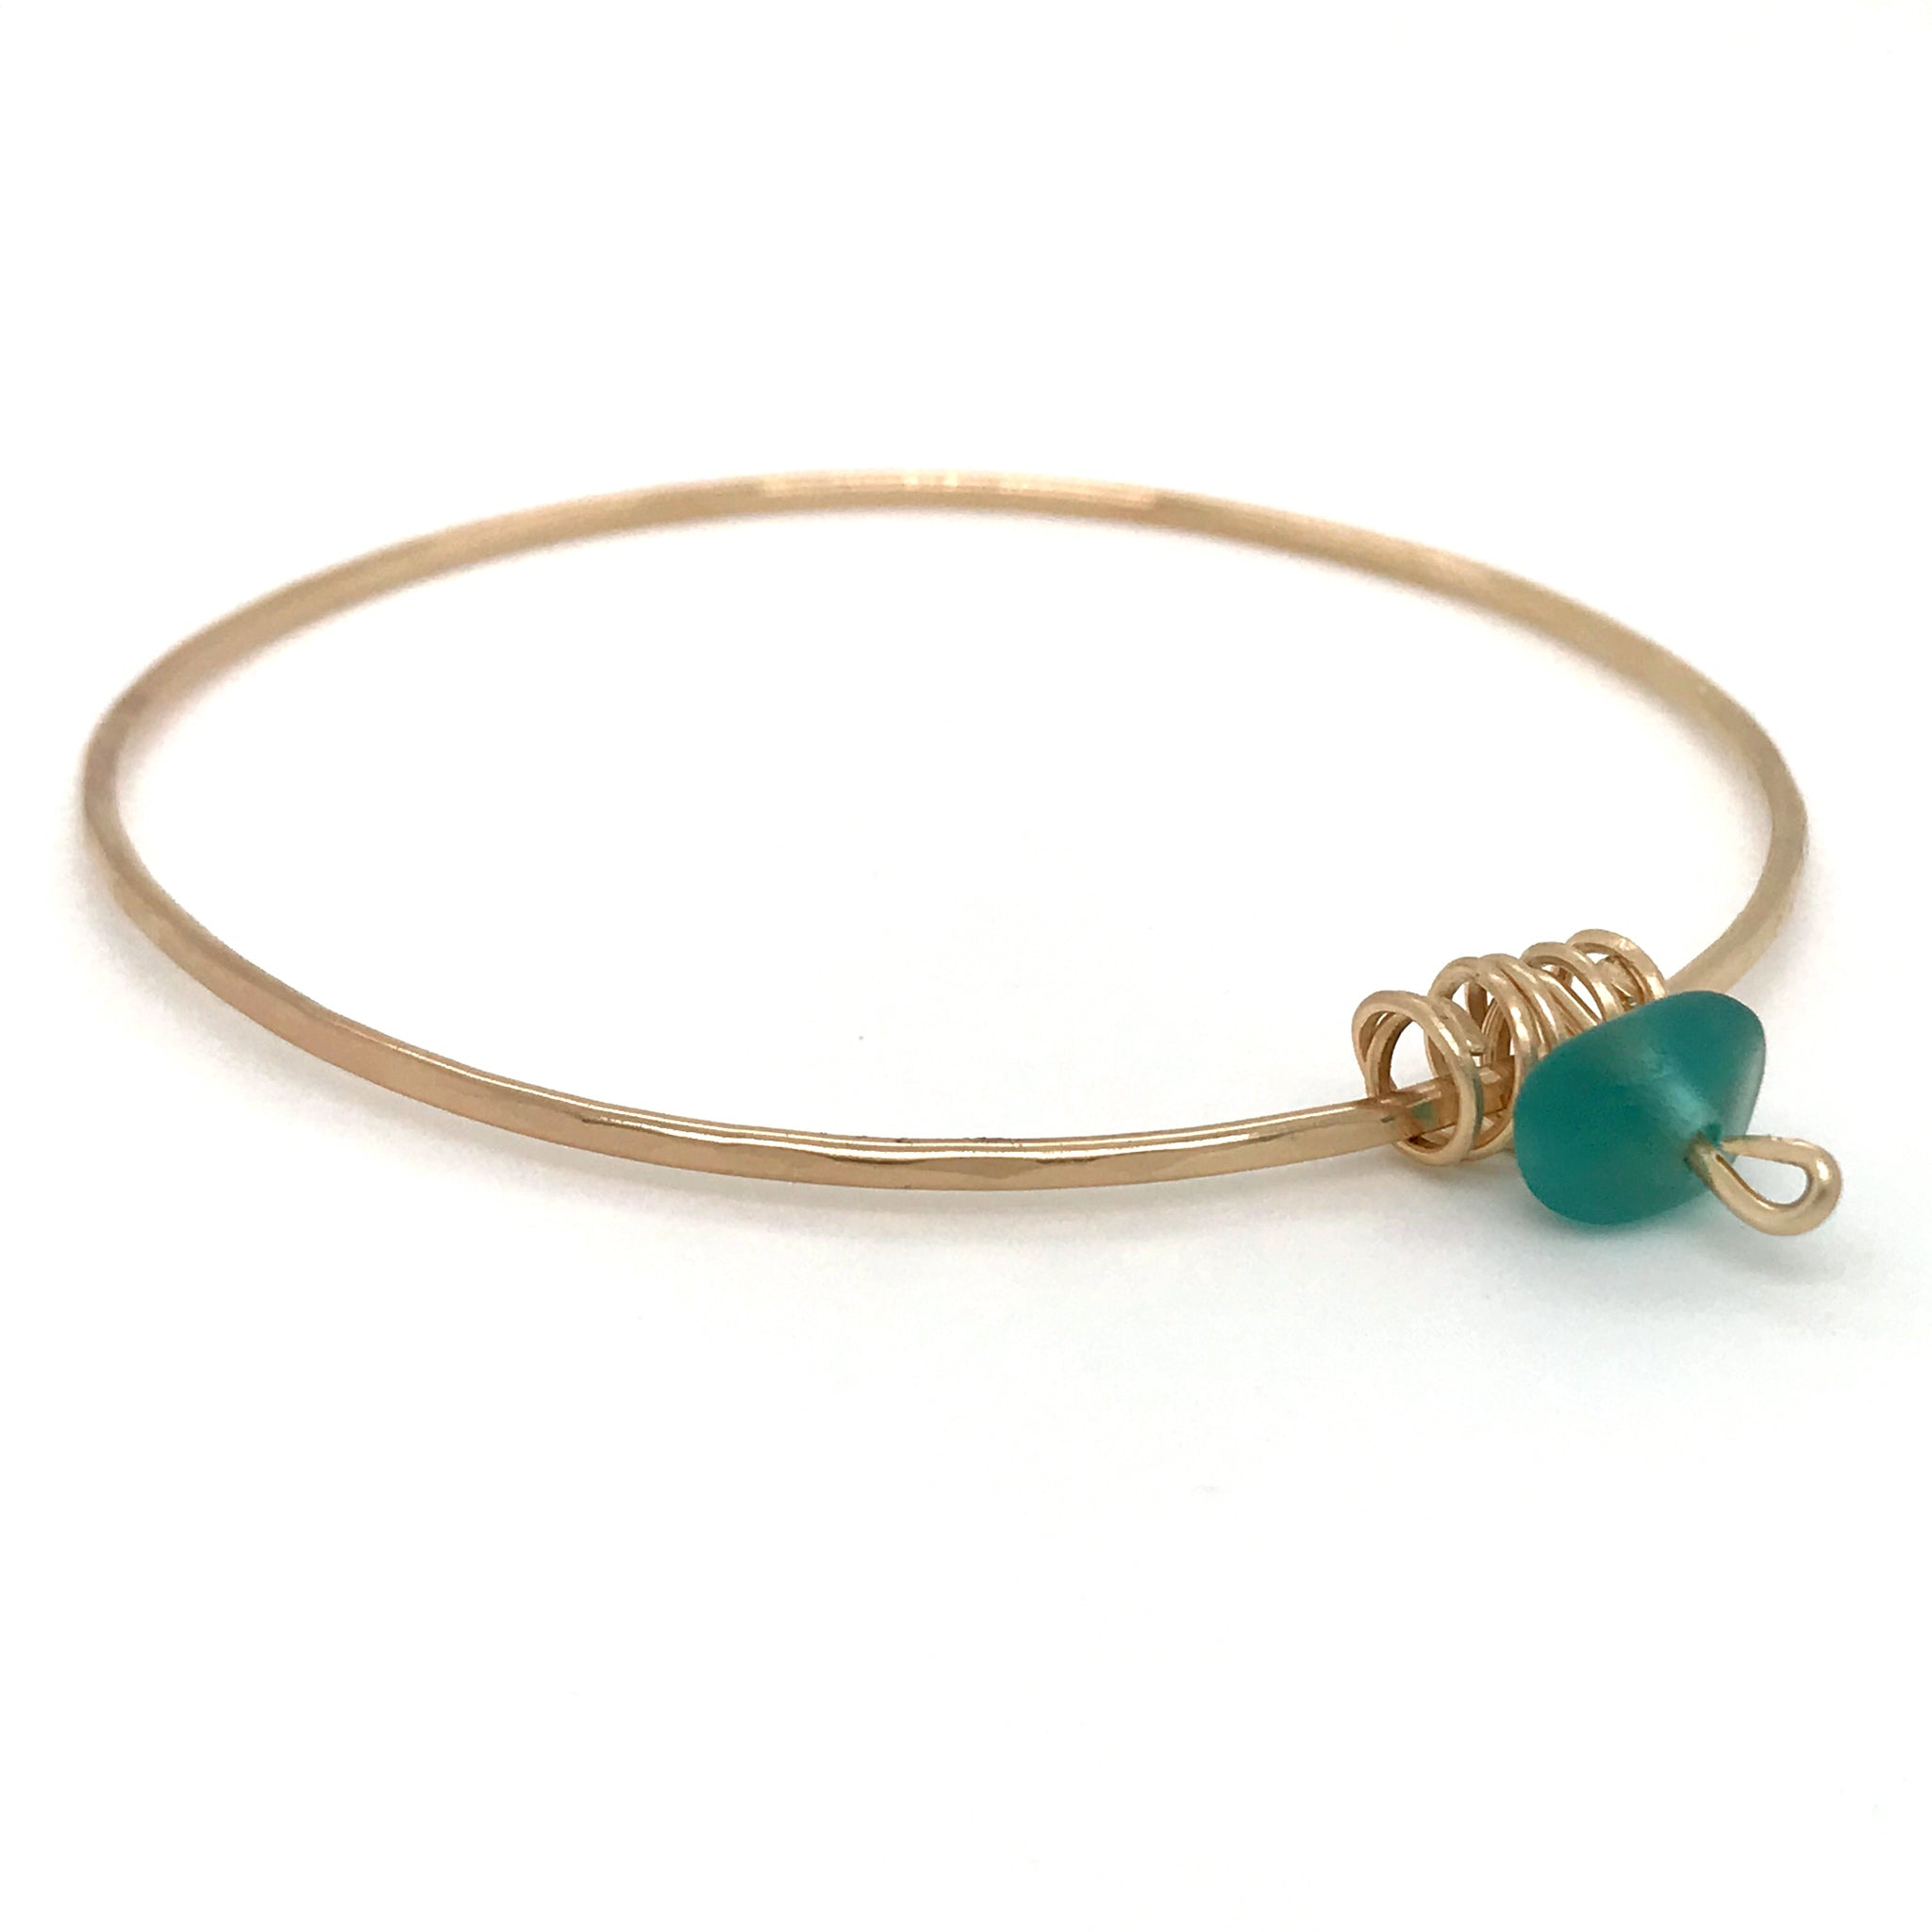 Teal Seaglass Bangle - Gold